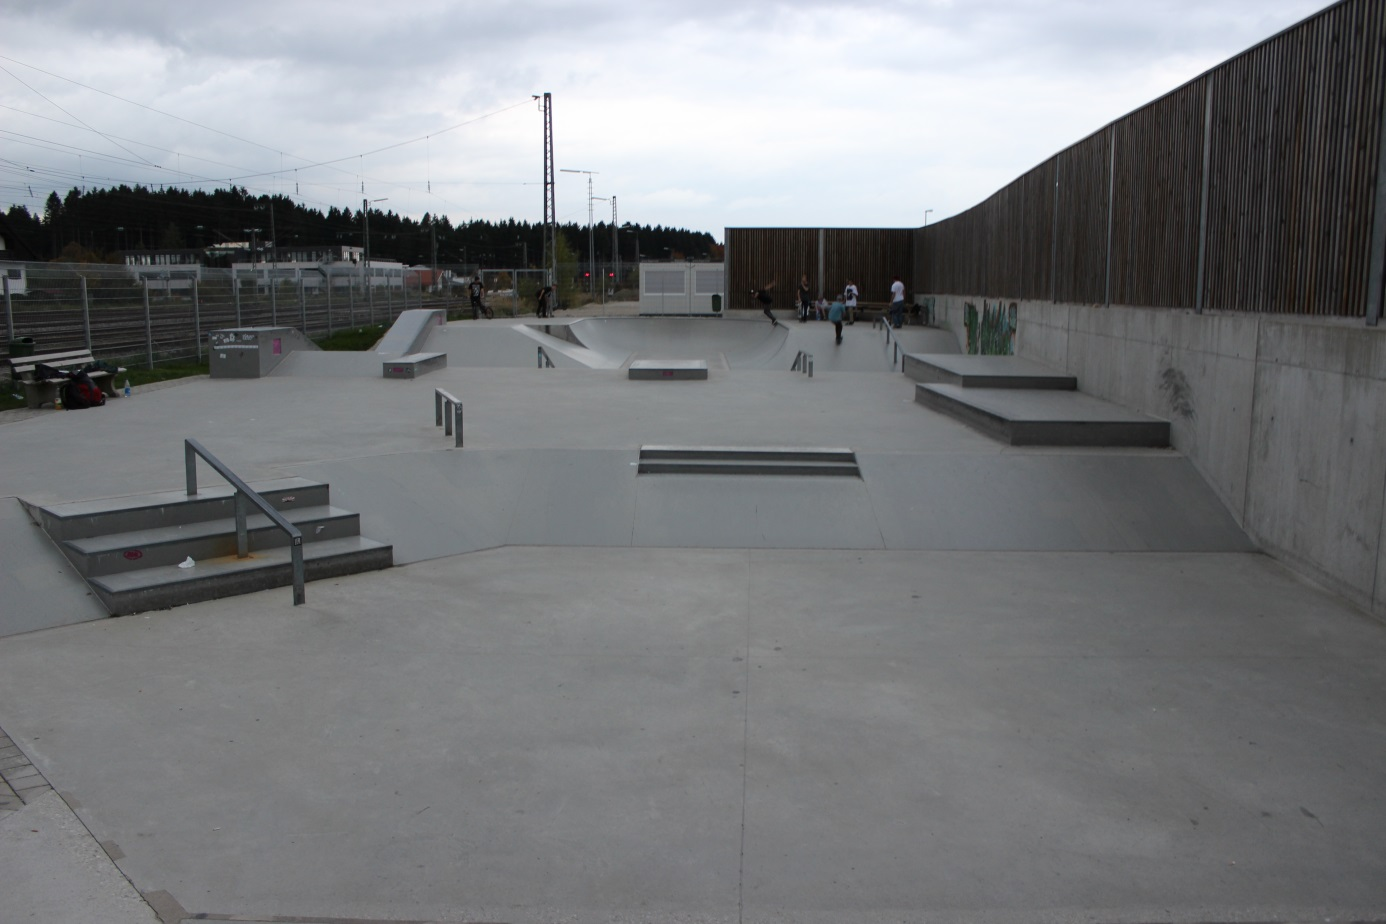 ... use the form below to delete this spotcheck skatepark holzkirchen bei